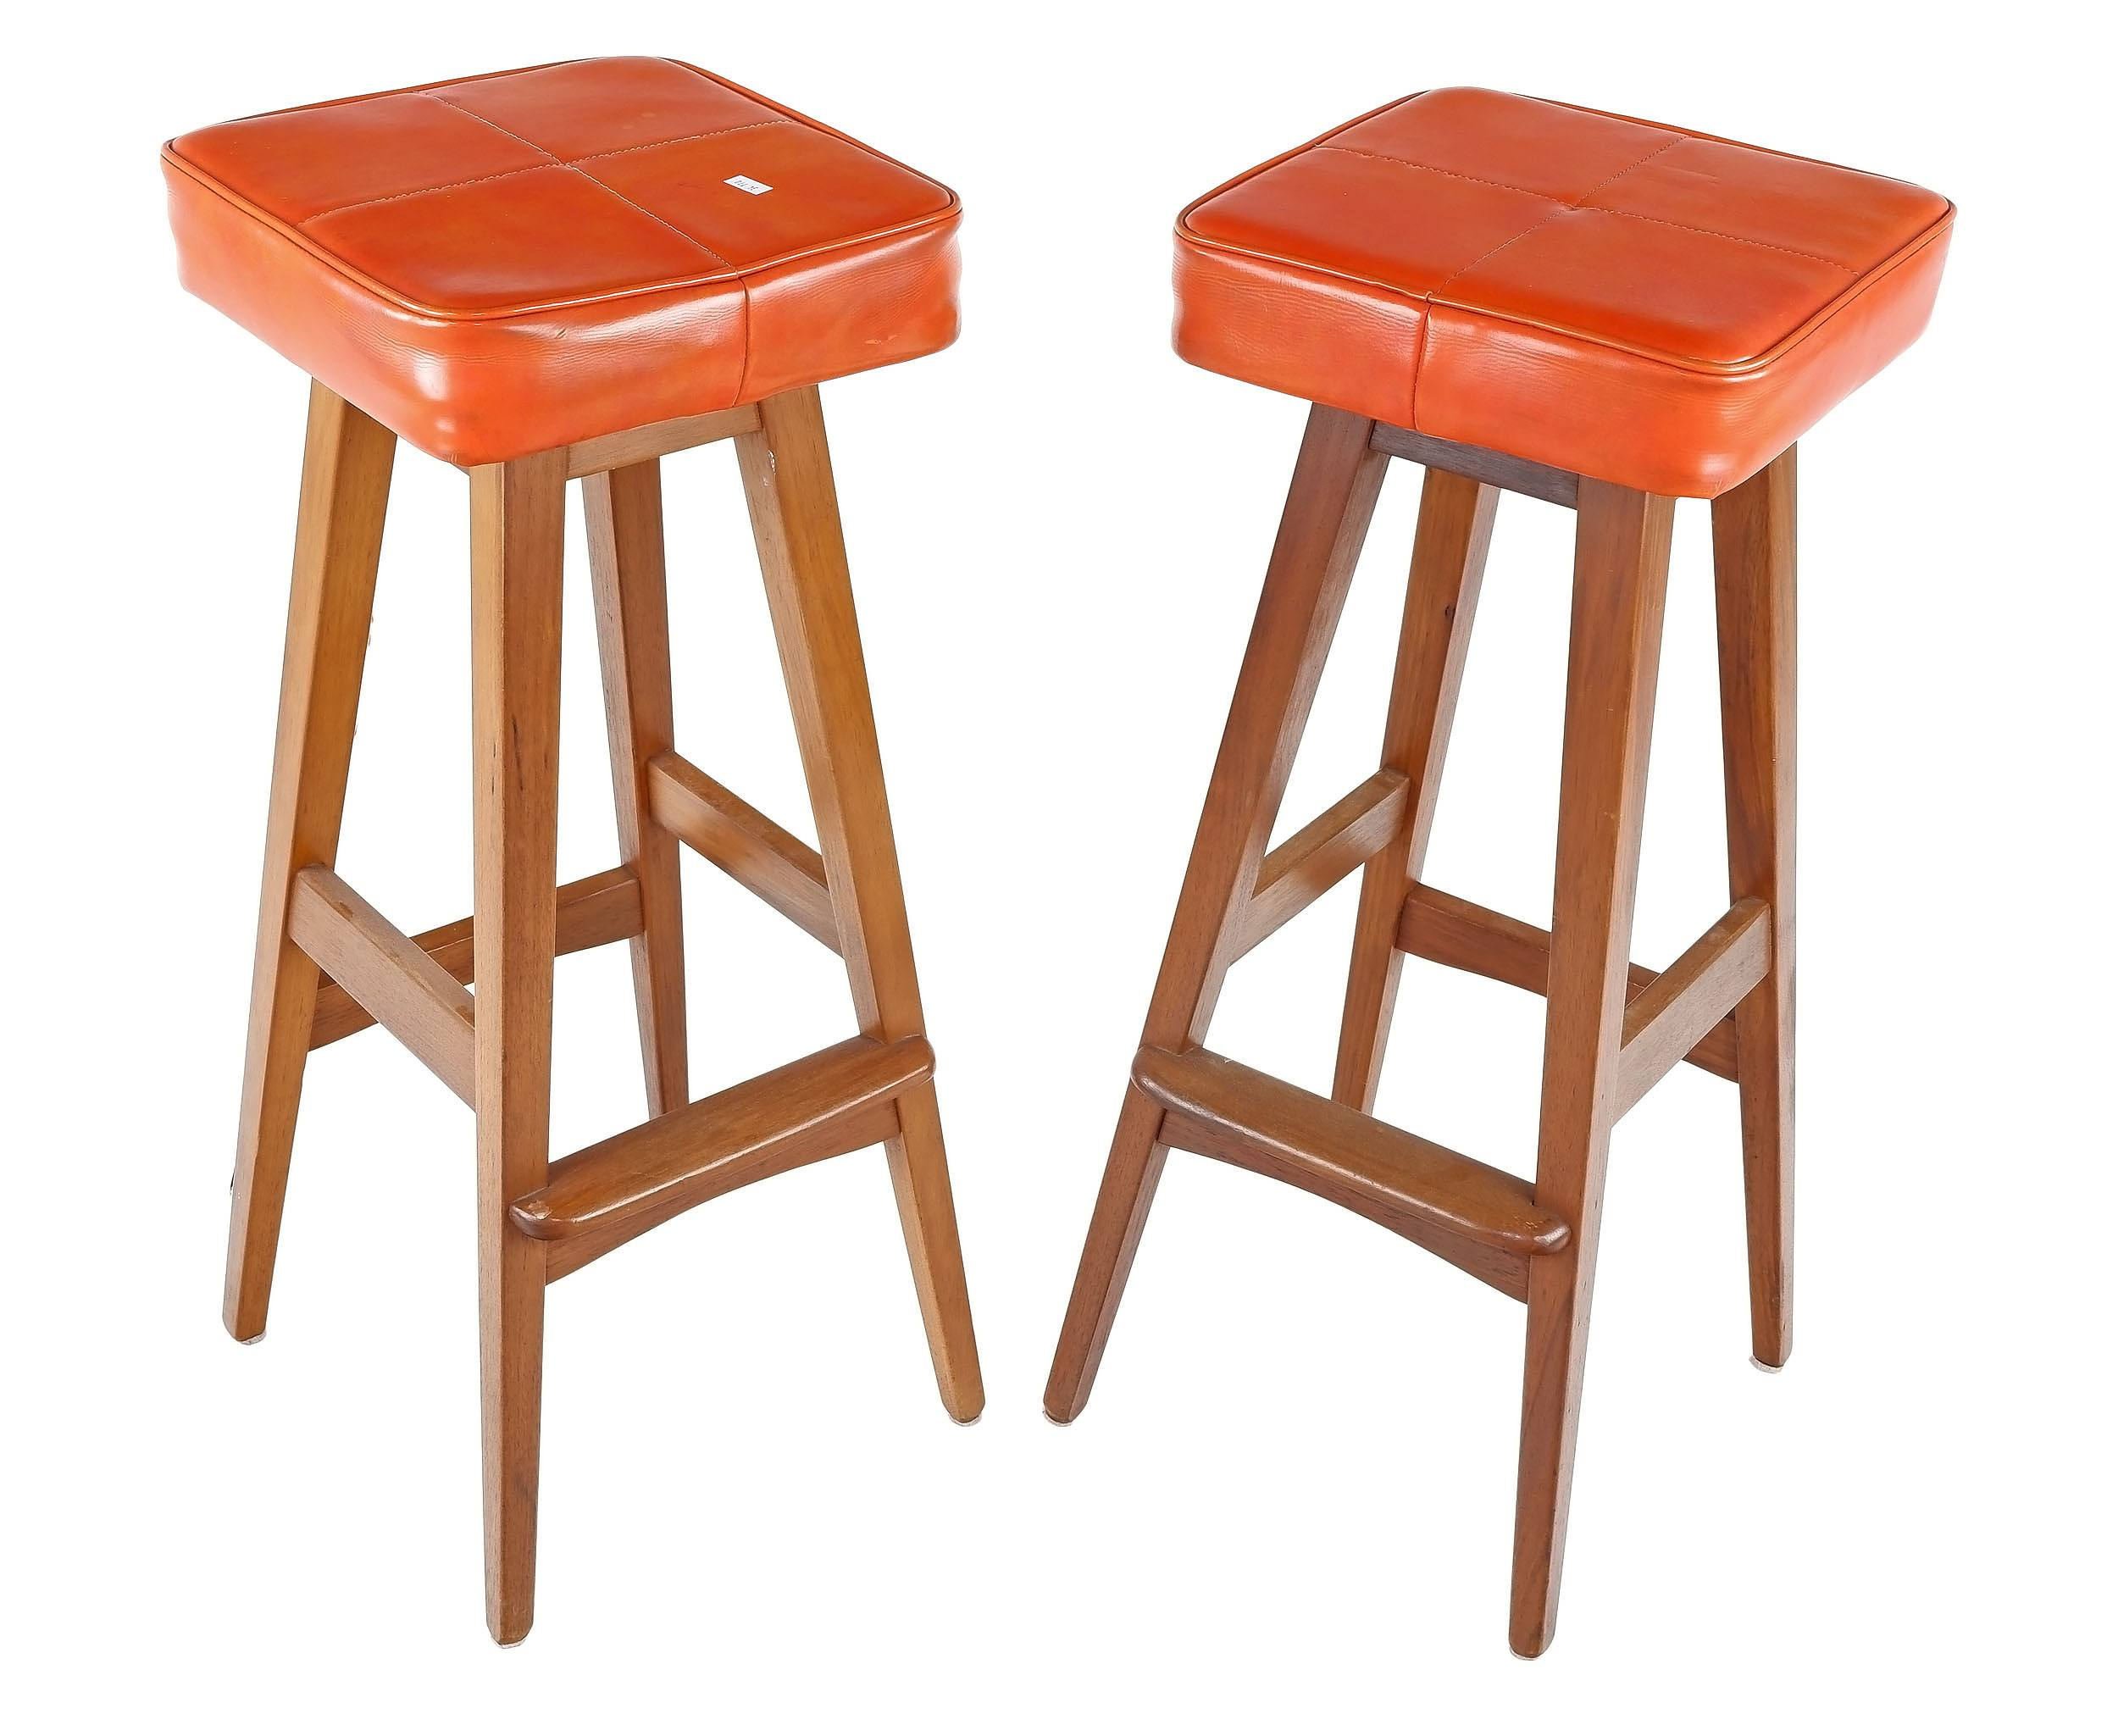 'Pair of Retro Macrob Teak and Vinyl Upholstered Bar Stools'